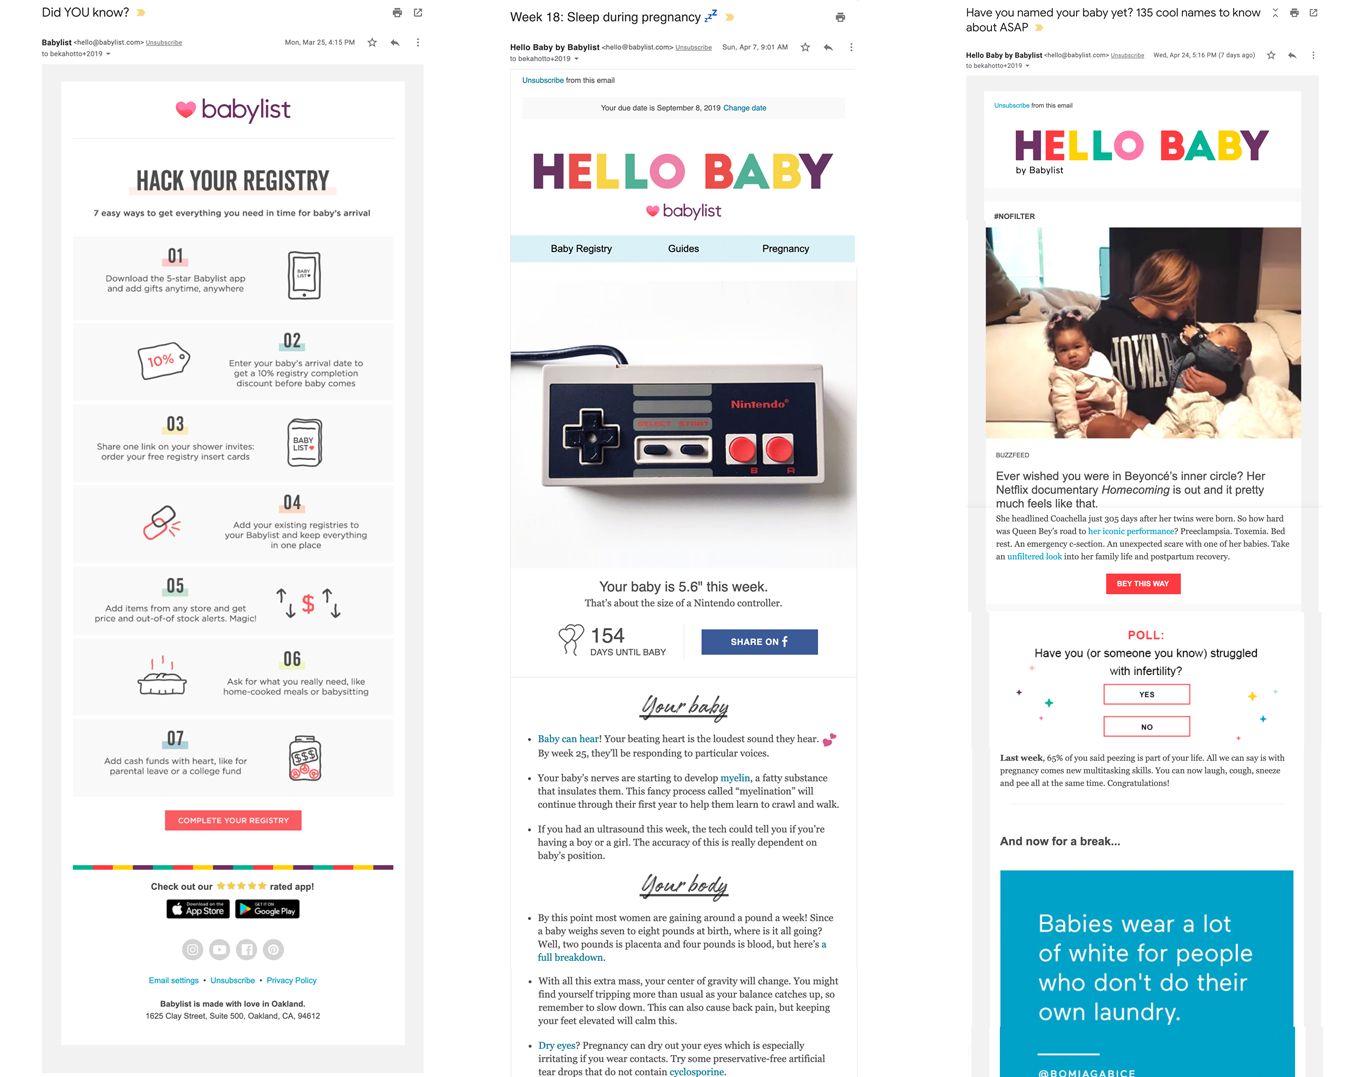 Three email campaigns I developed: an activation series for new users, a weekly lifestage email, and a weekly newsletter with timely content and interactive elements.